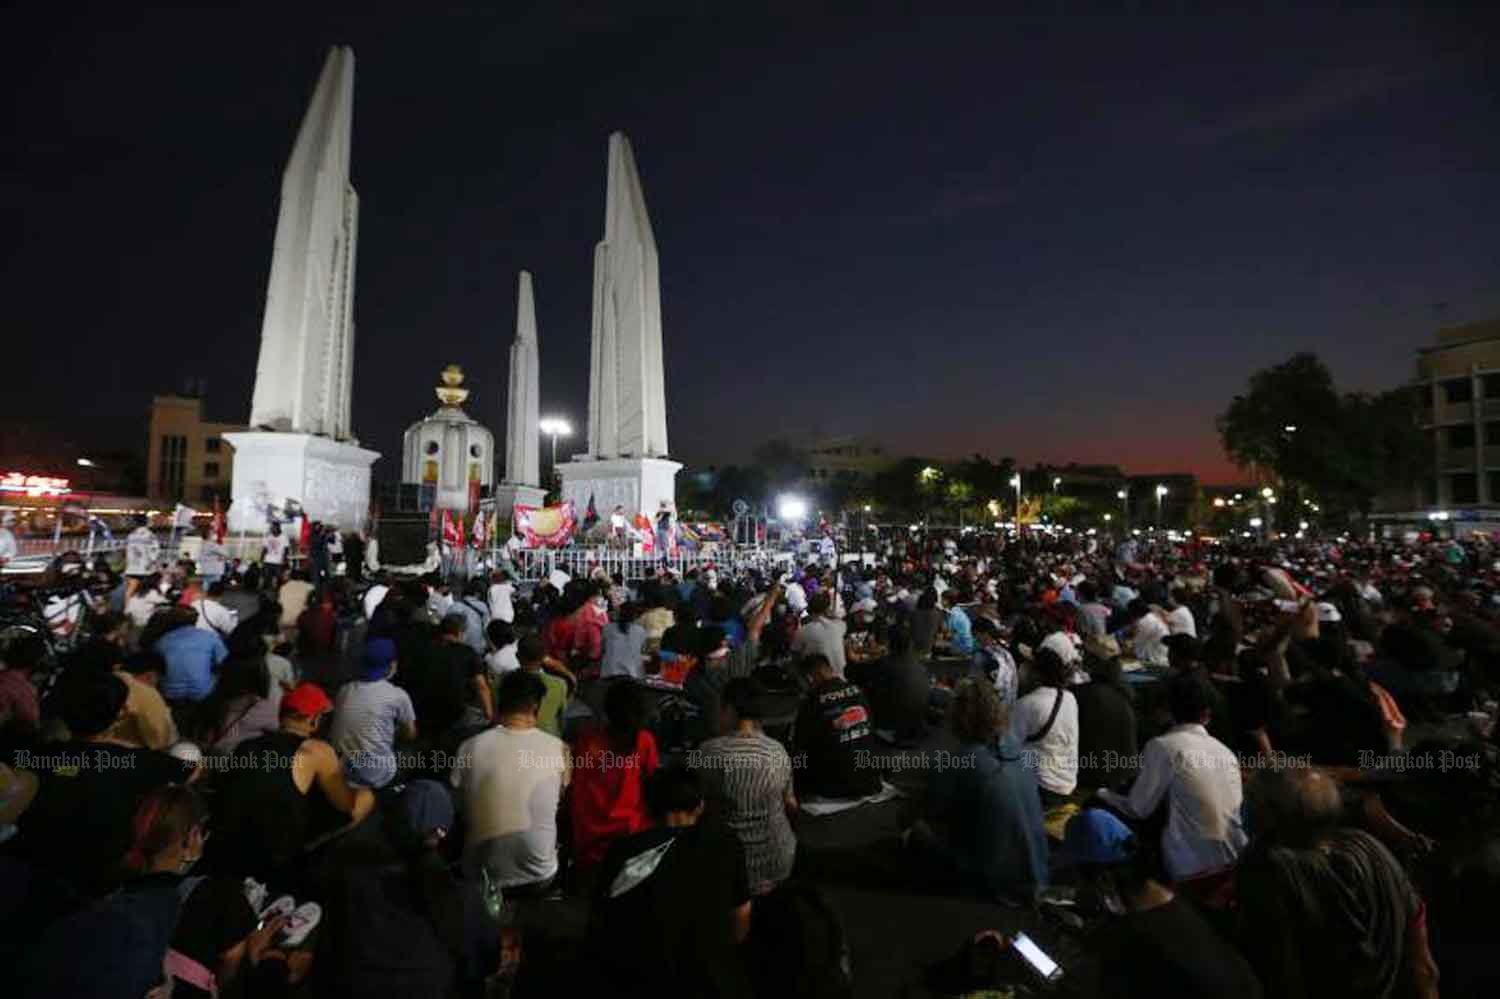 Anti-government demonstrators gather at Democracy Monument in Bangkok on Sunday. Foreign students can take part, if they stay within the law, says the immigration chief.(Photo: Varuth Hirunyatheb)